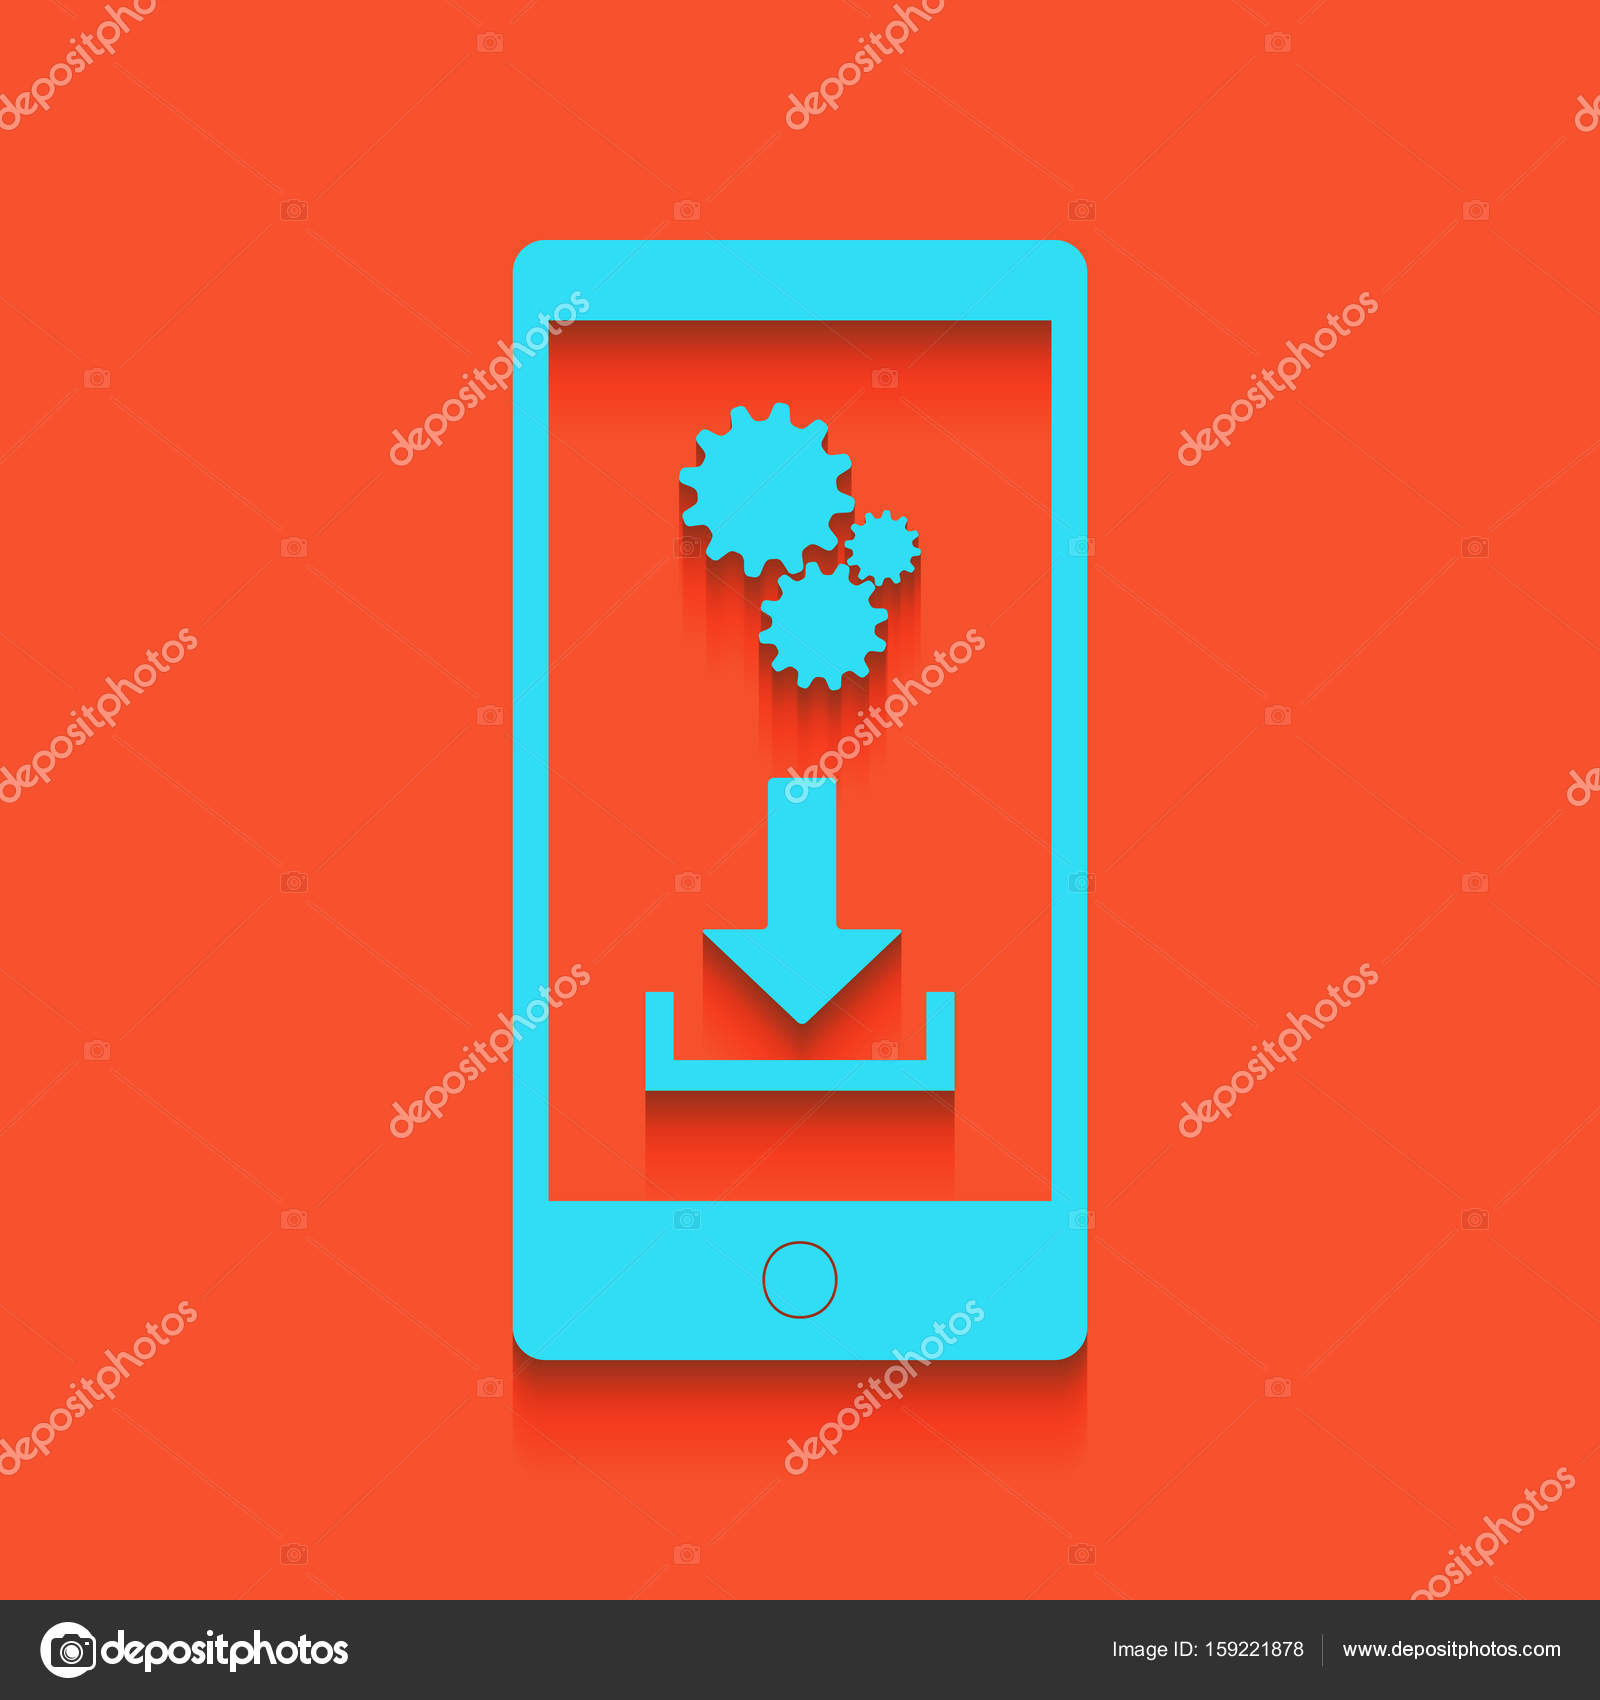 Phone settings  Download and install apps  Vector  Blue icon